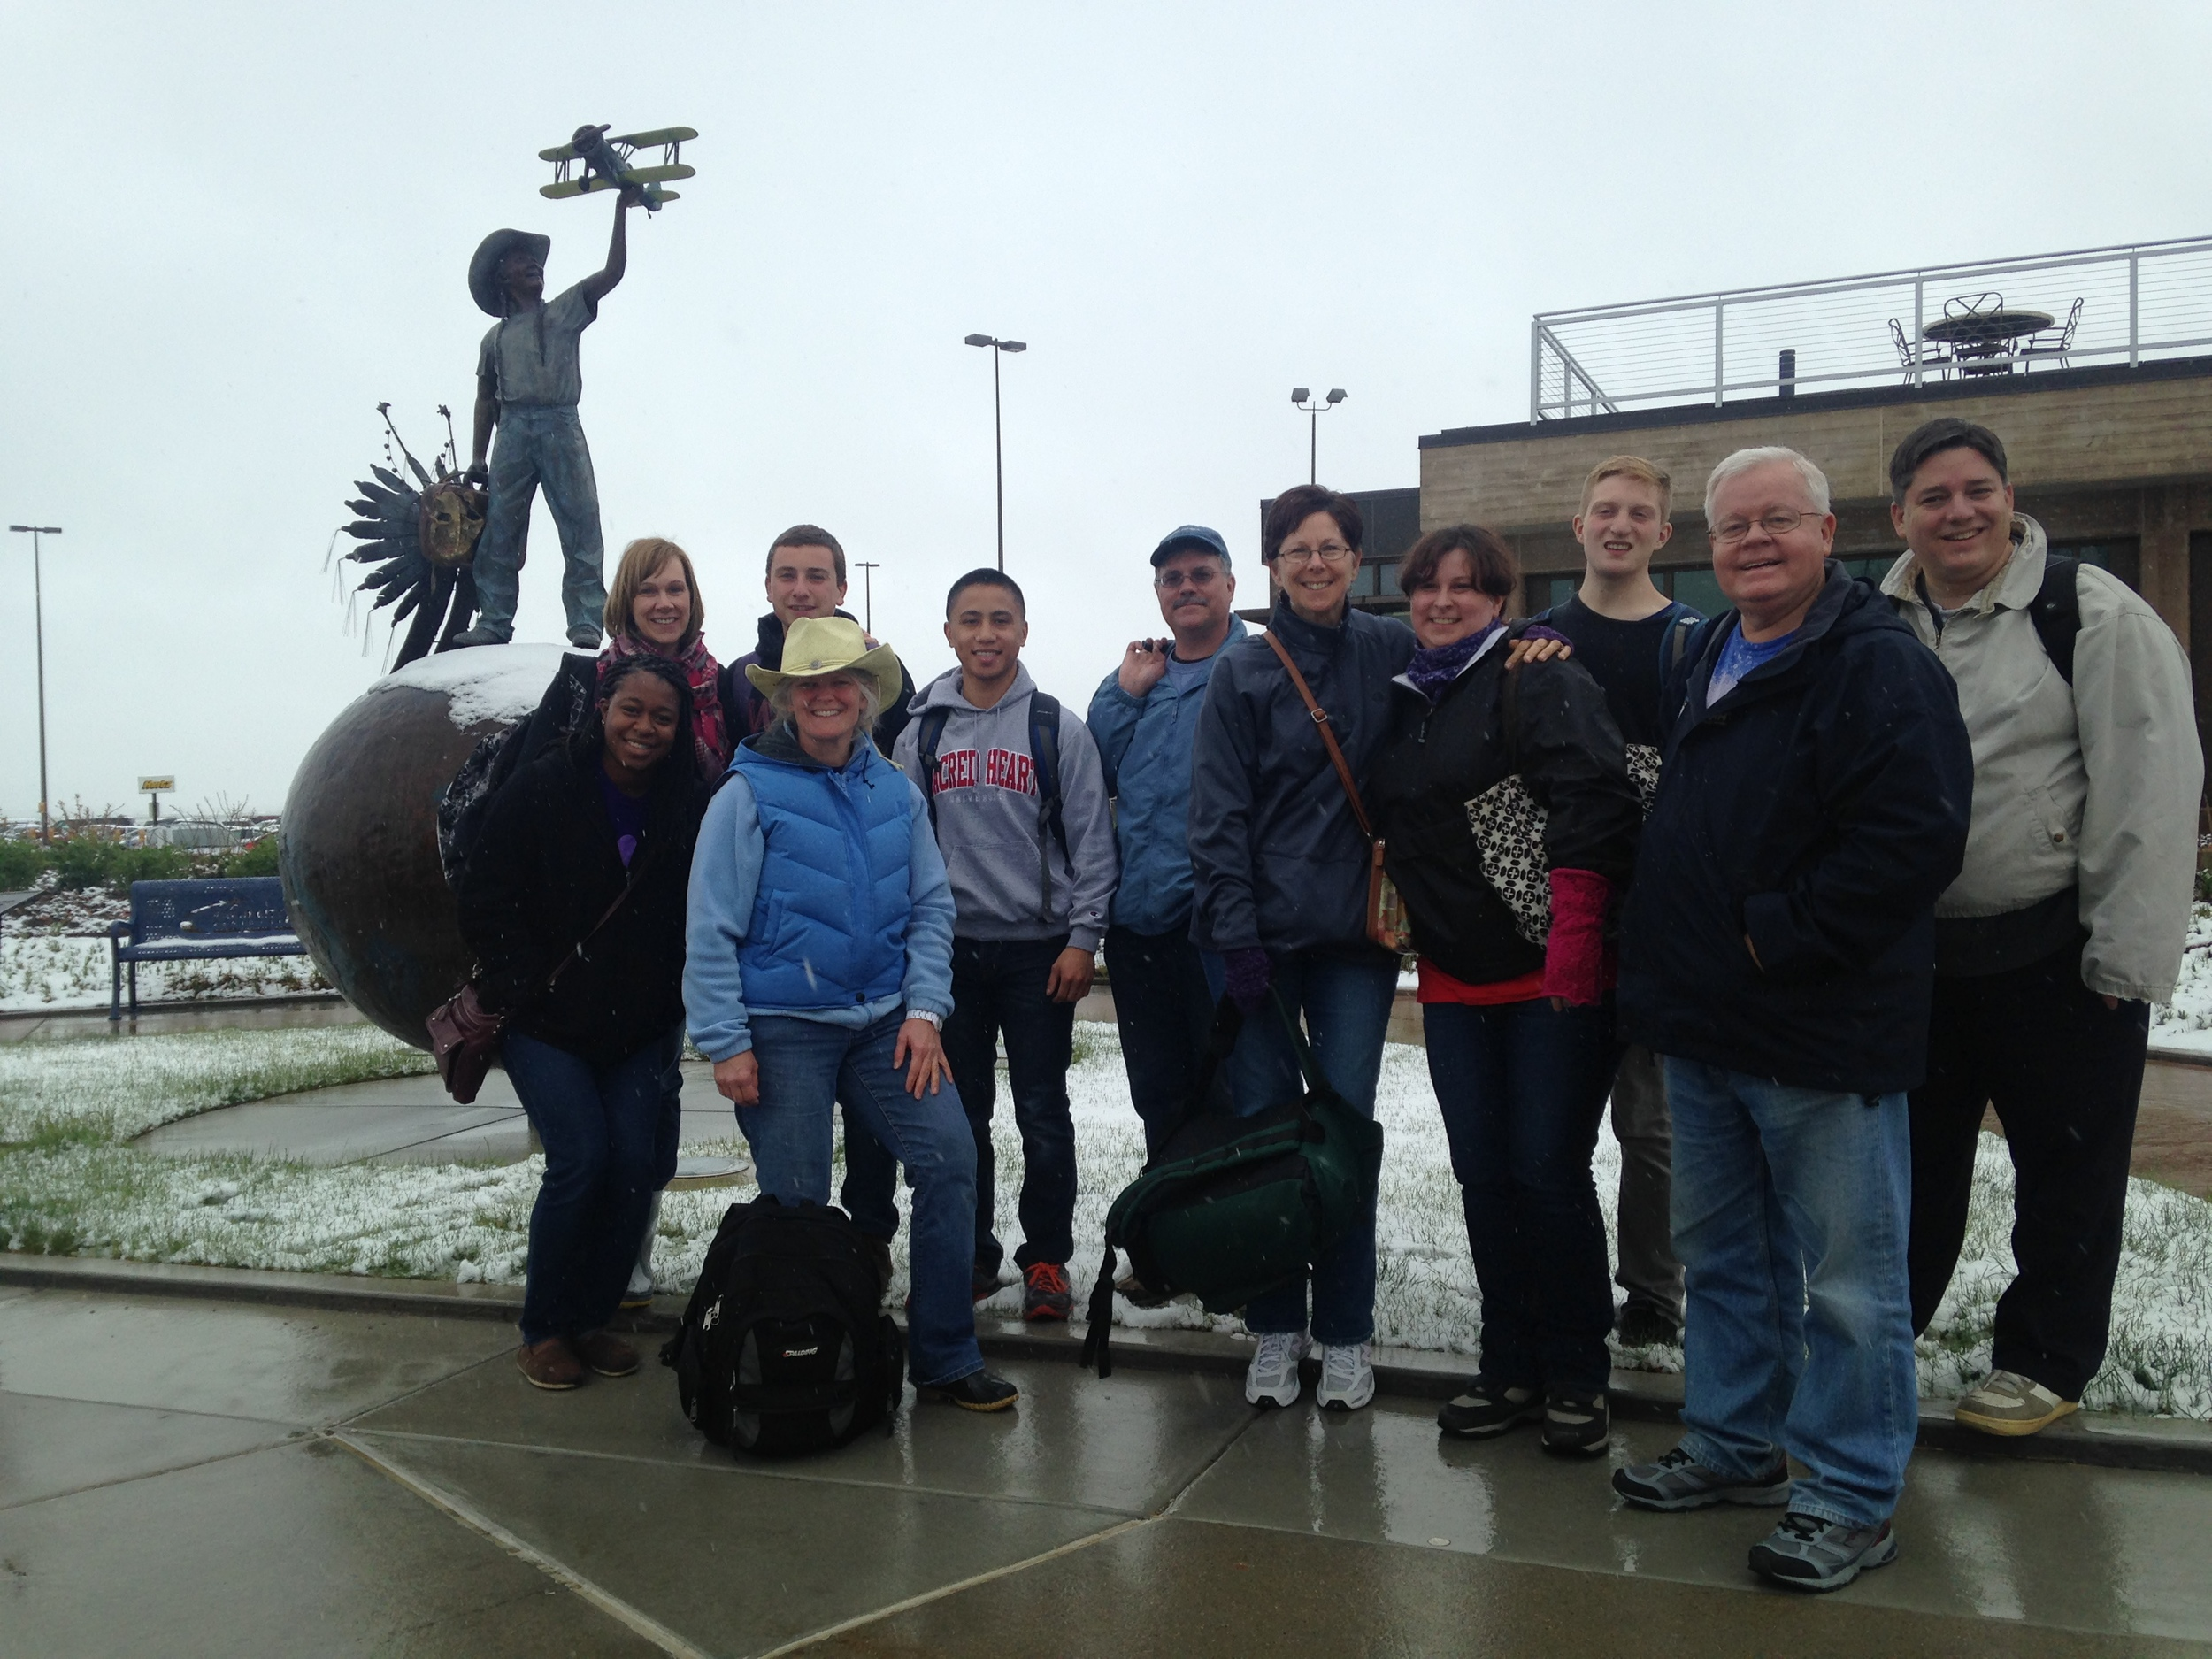 Our friends from Naugatuck and Bethel arrive to a snowy Rapid City. (May 2015)